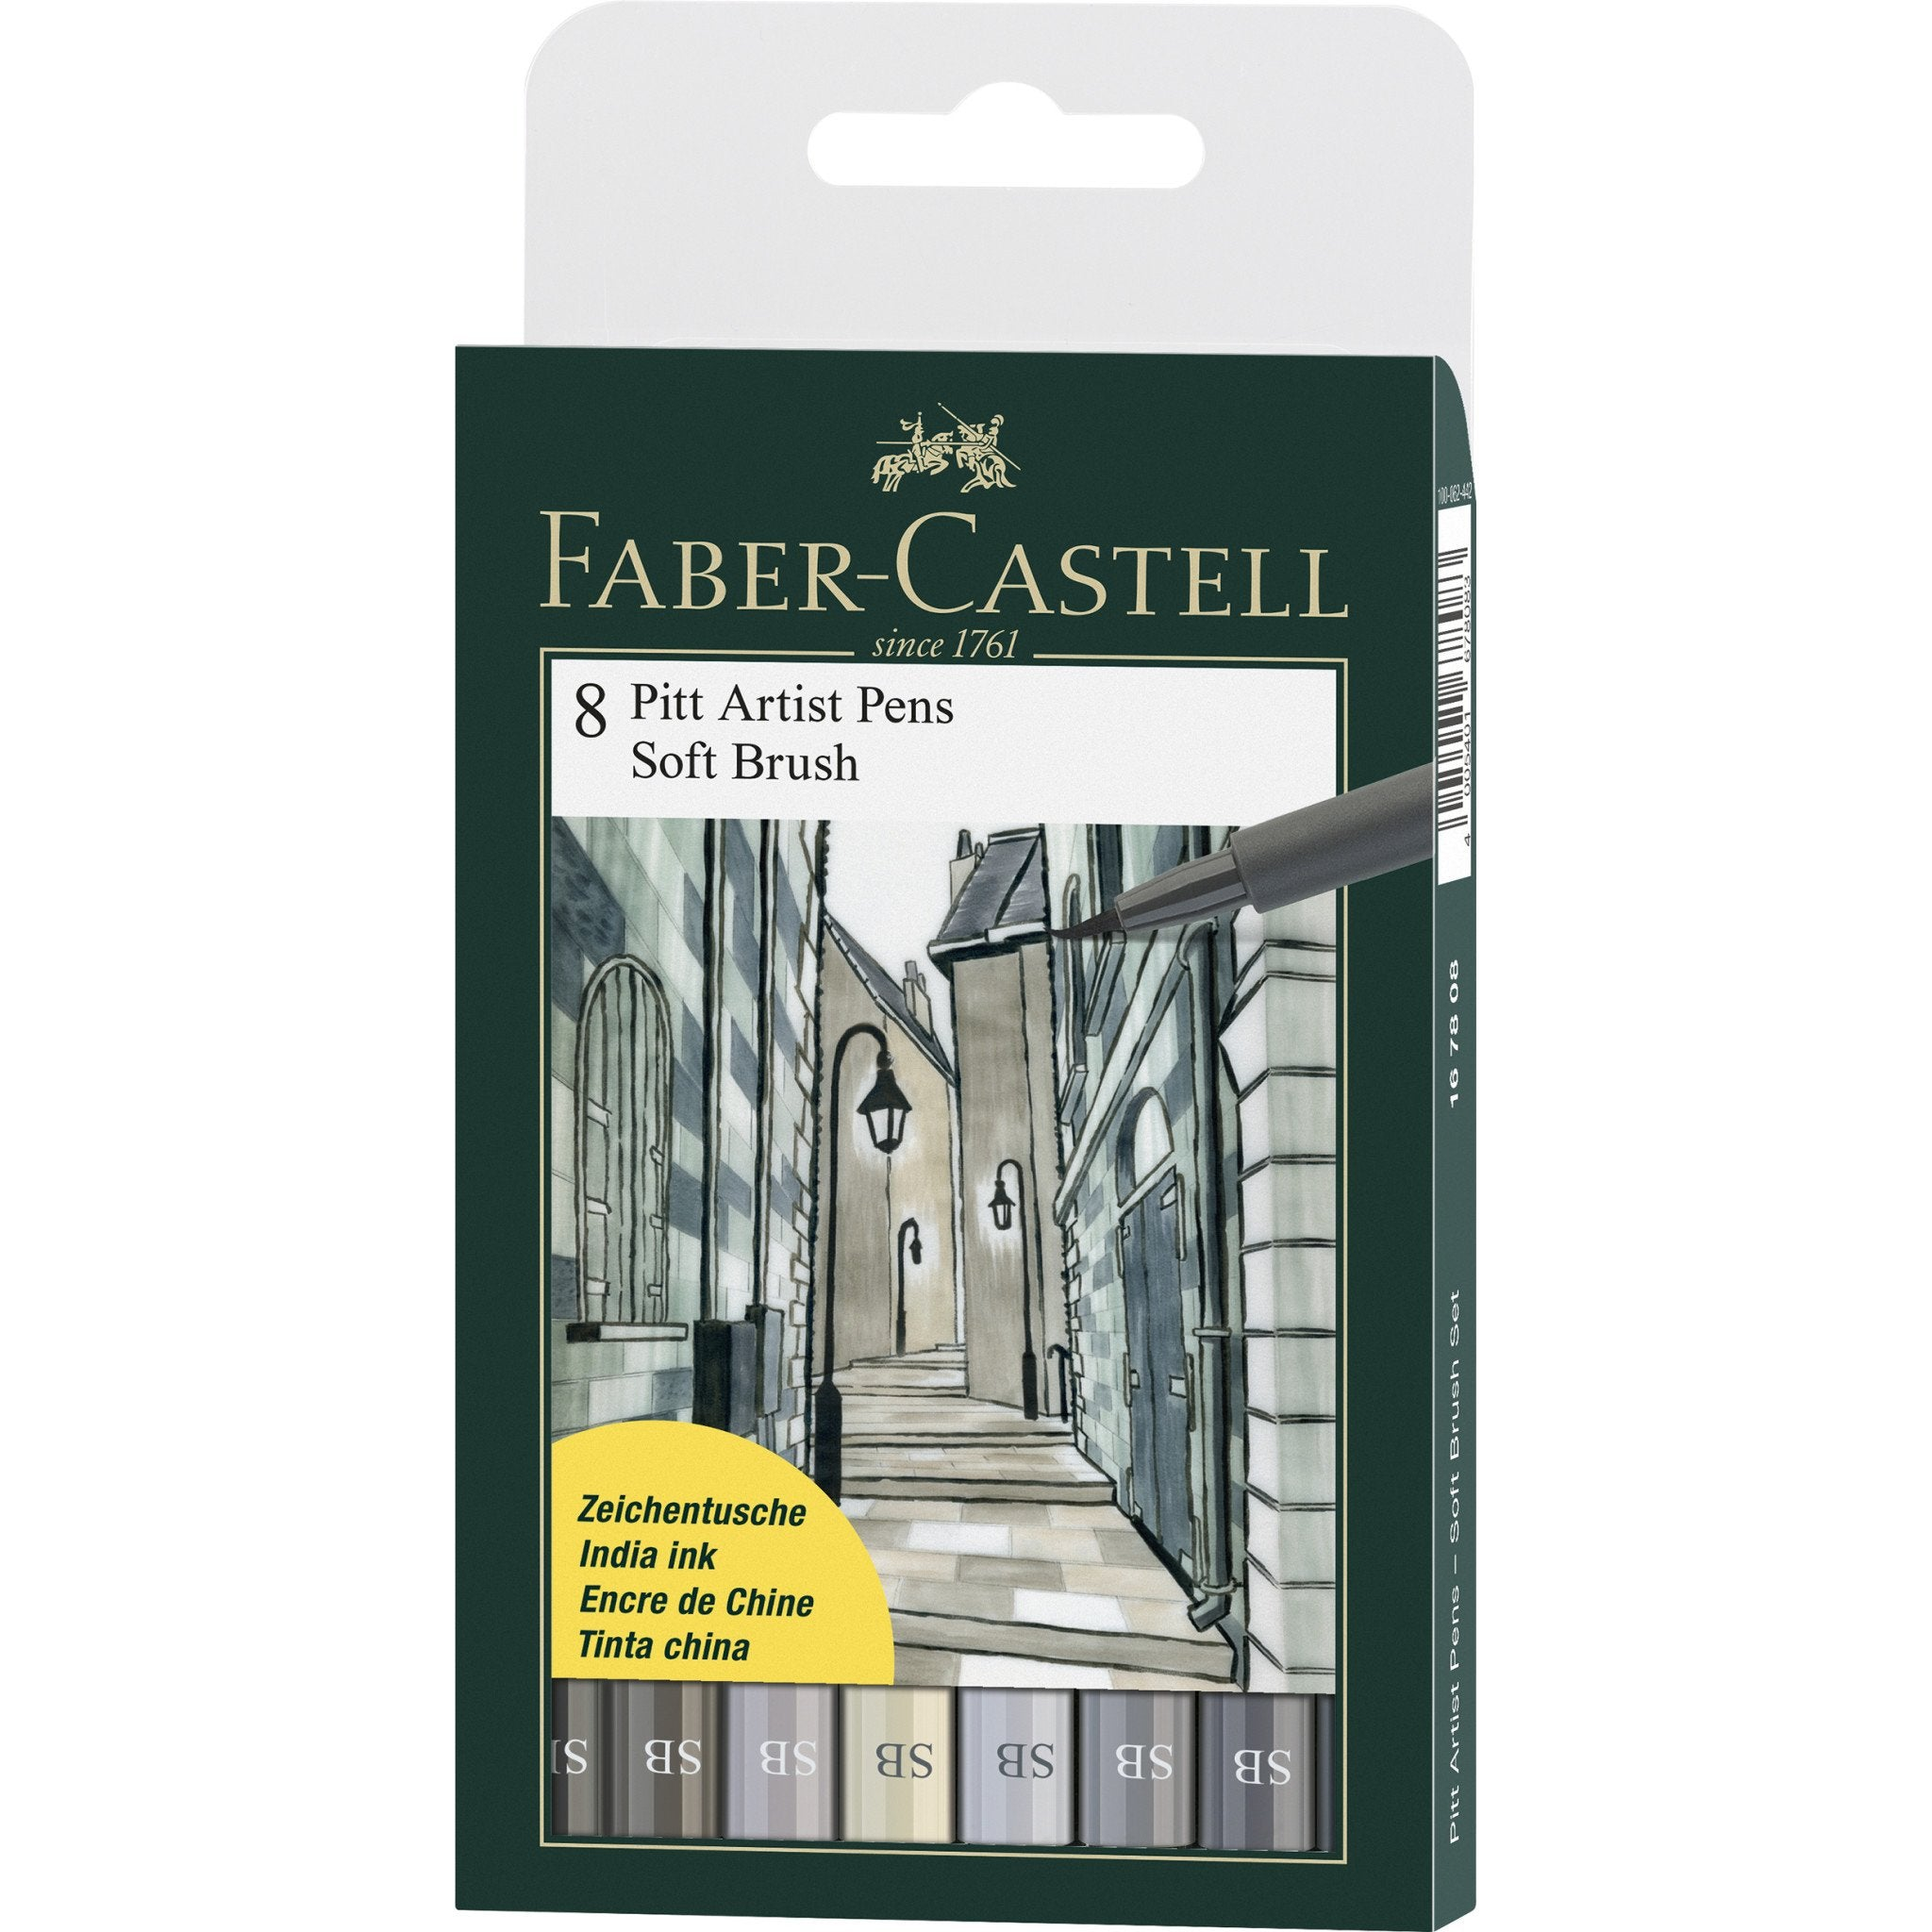 Faber-Castell PITT Artist Pens Soft Brush Set/8